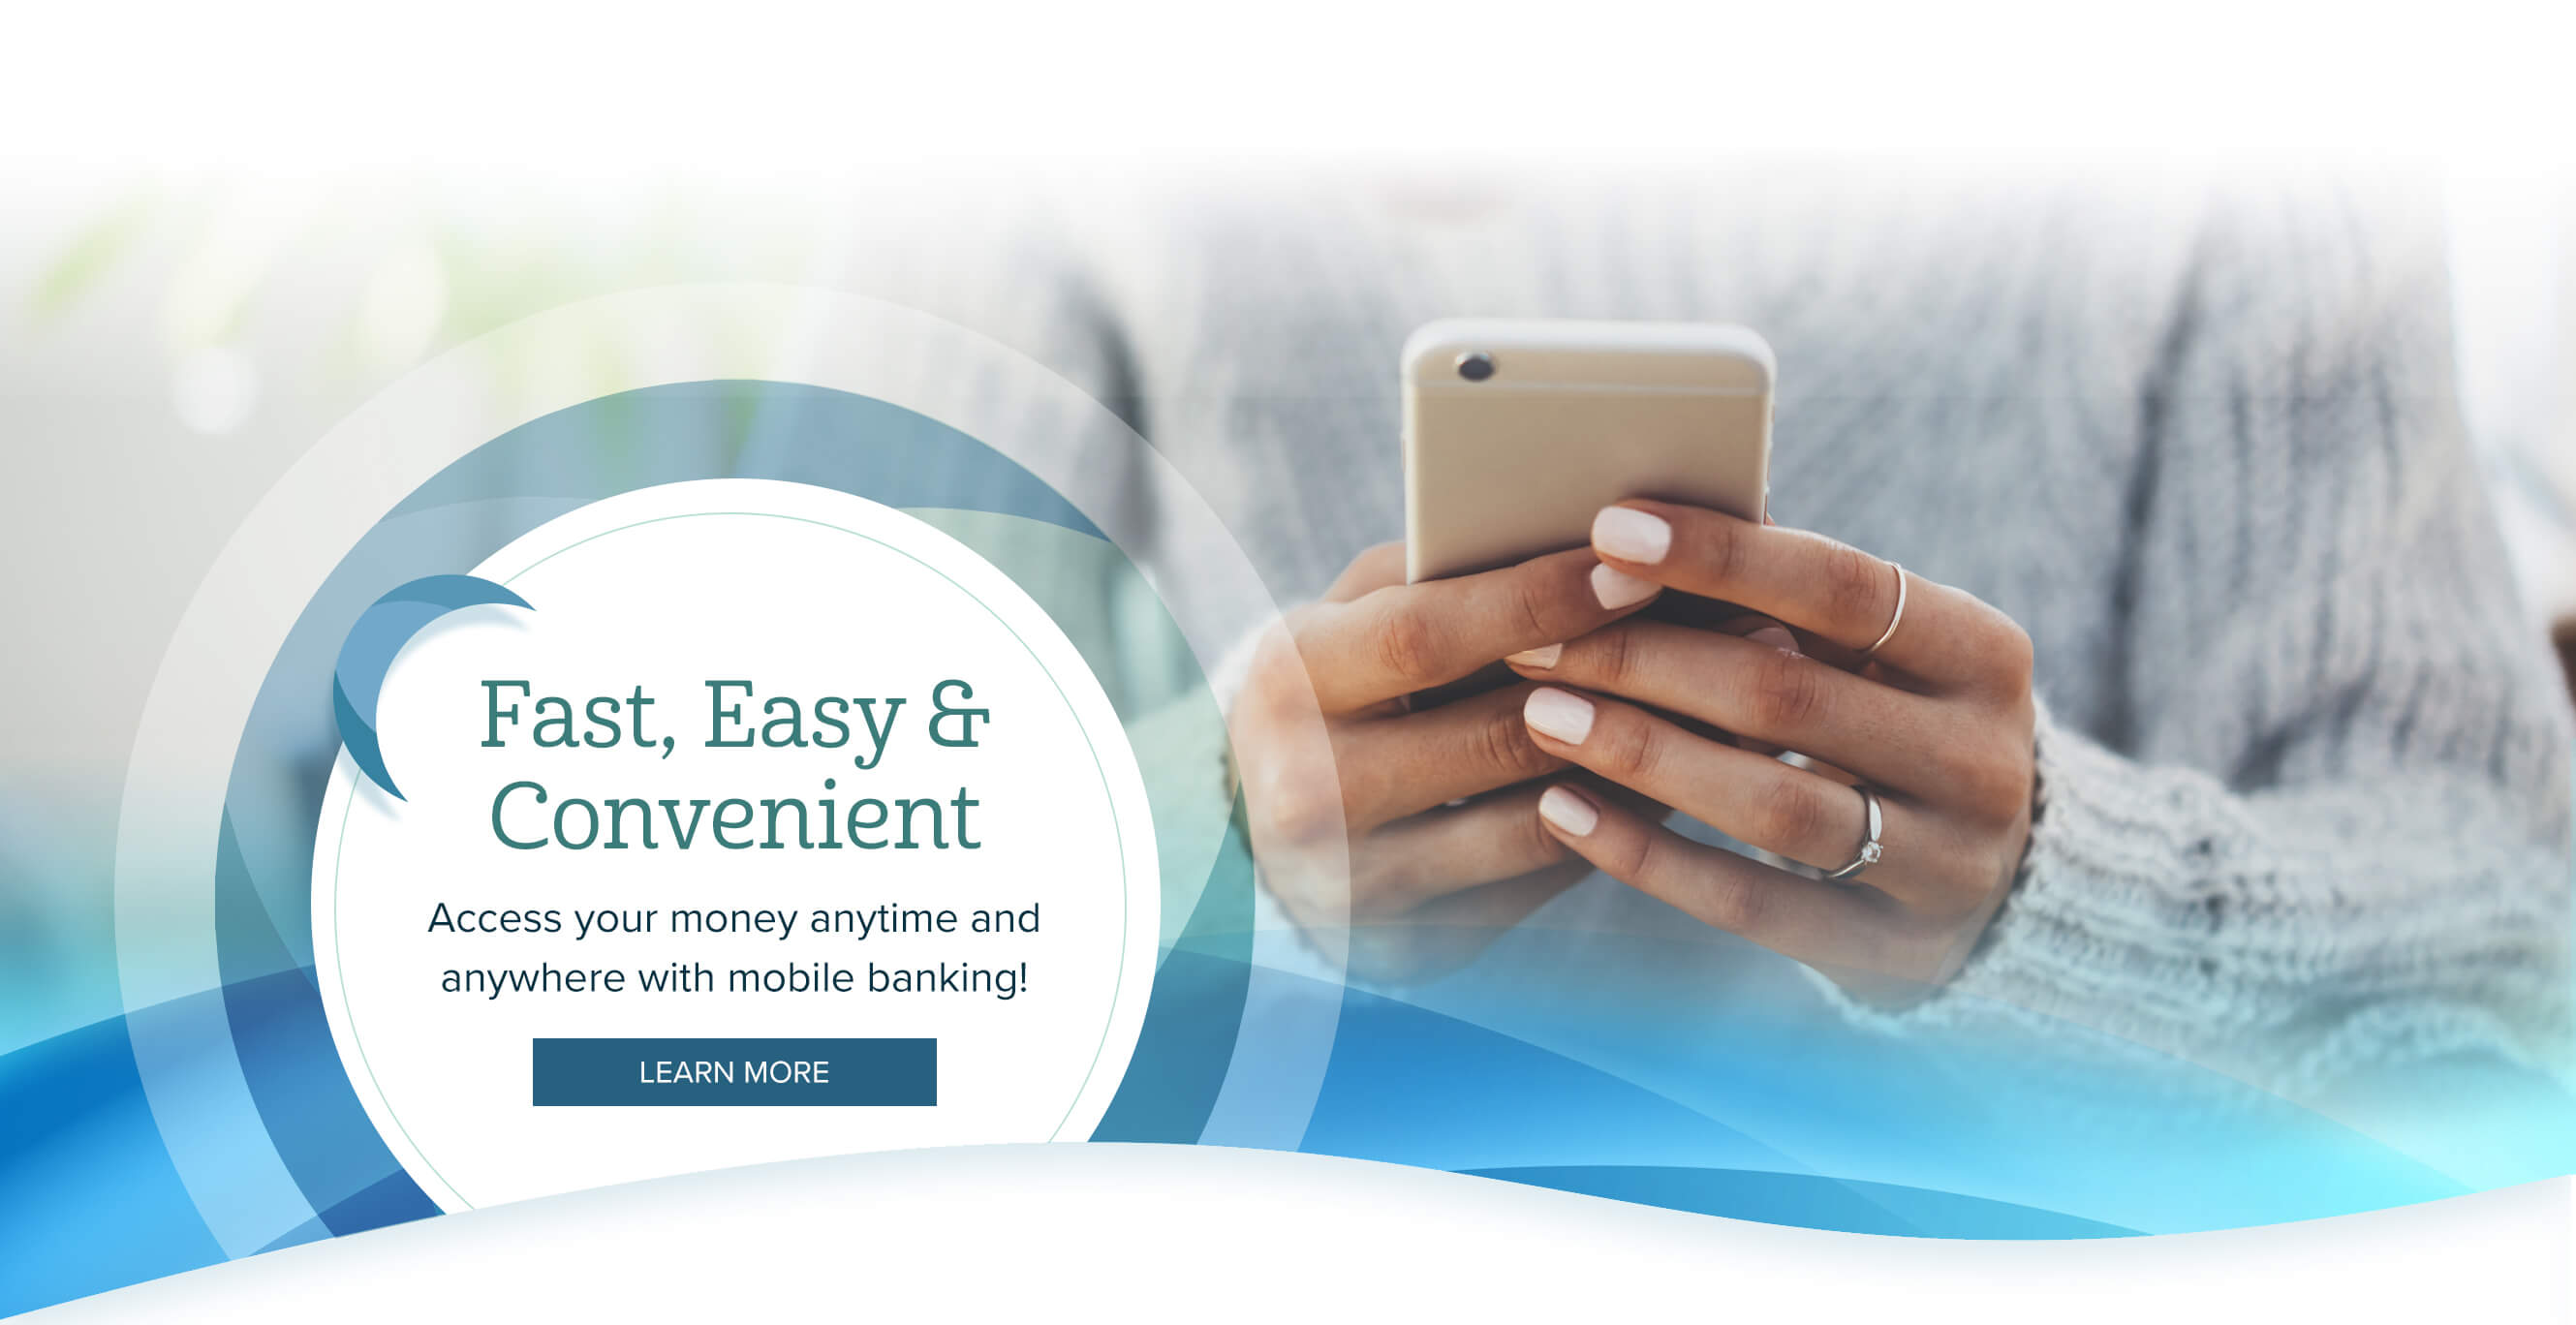 Fast, Easy & Convenient. Access your money anytime and anywhere with mobile banking! Learn More